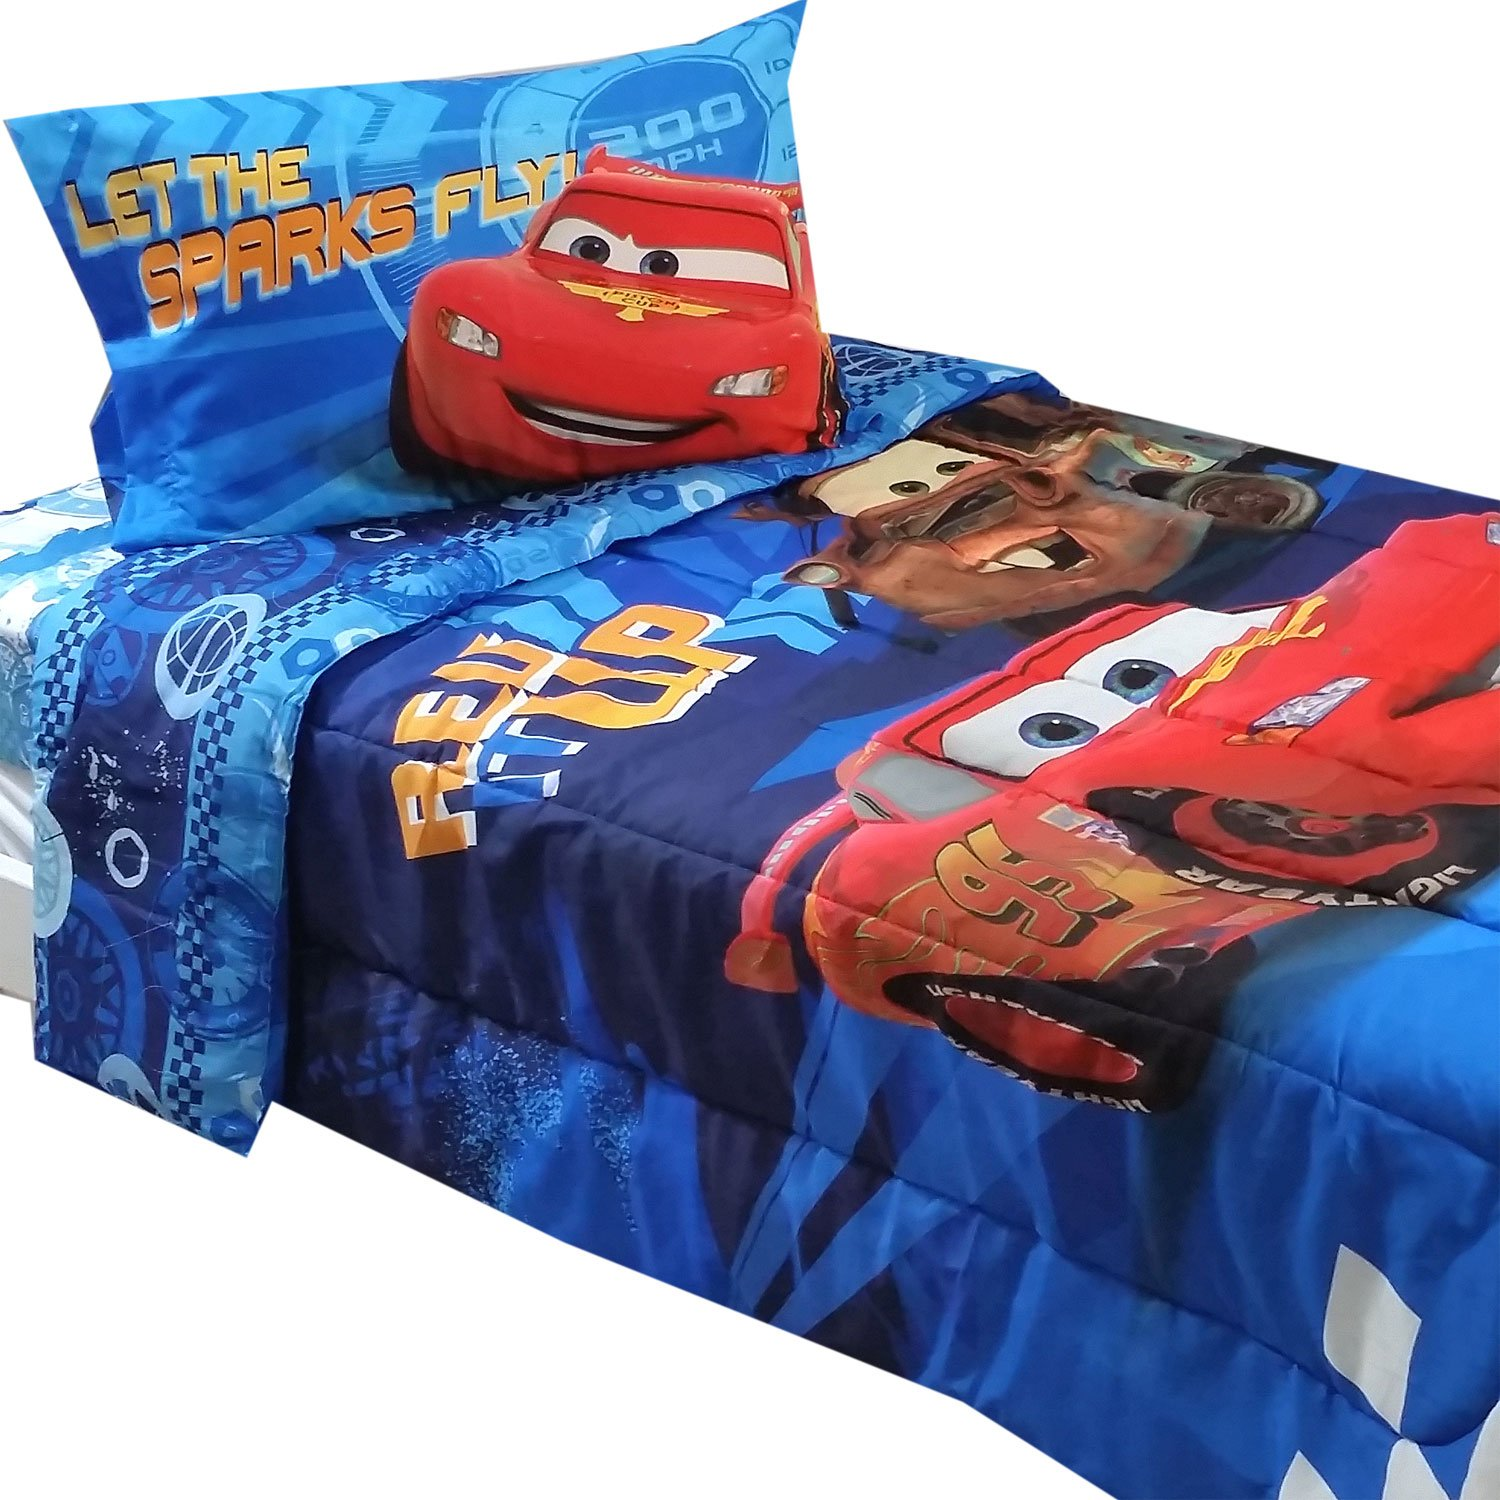 Amazon com  4pc Disney Cars Twin Bedding Set Lightning McQueen City Limits  Comforter and Sheet Set  Home   Kitchen. Amazon com  4pc Disney Cars Twin Bedding Set Lightning McQueen